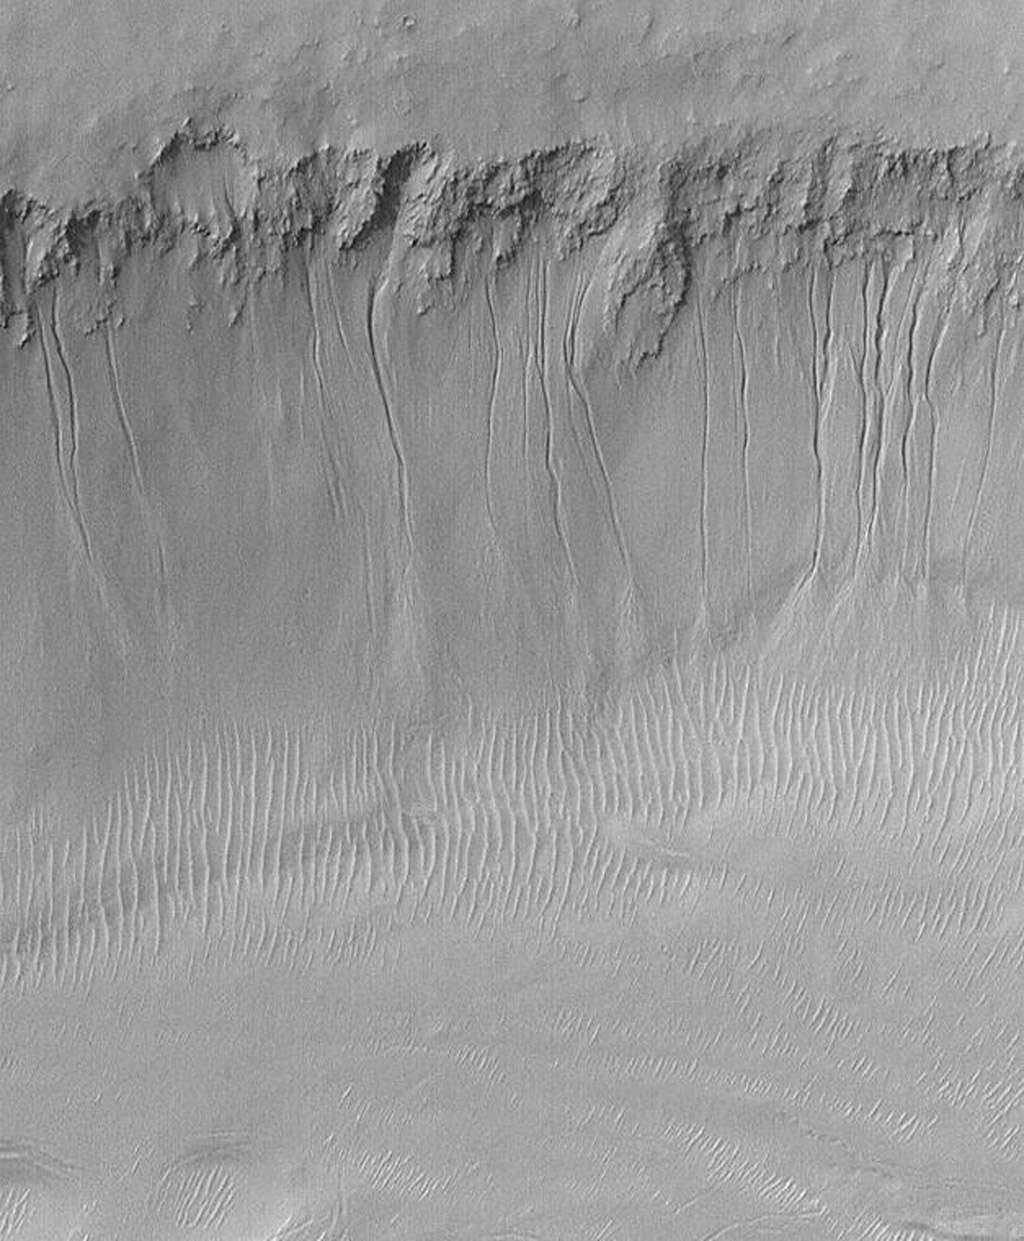 The high resolution view taken by NASA's Mars Global Surveyor on July 23, 2000 crosses one of the troughs of the Sirenum Fossae.